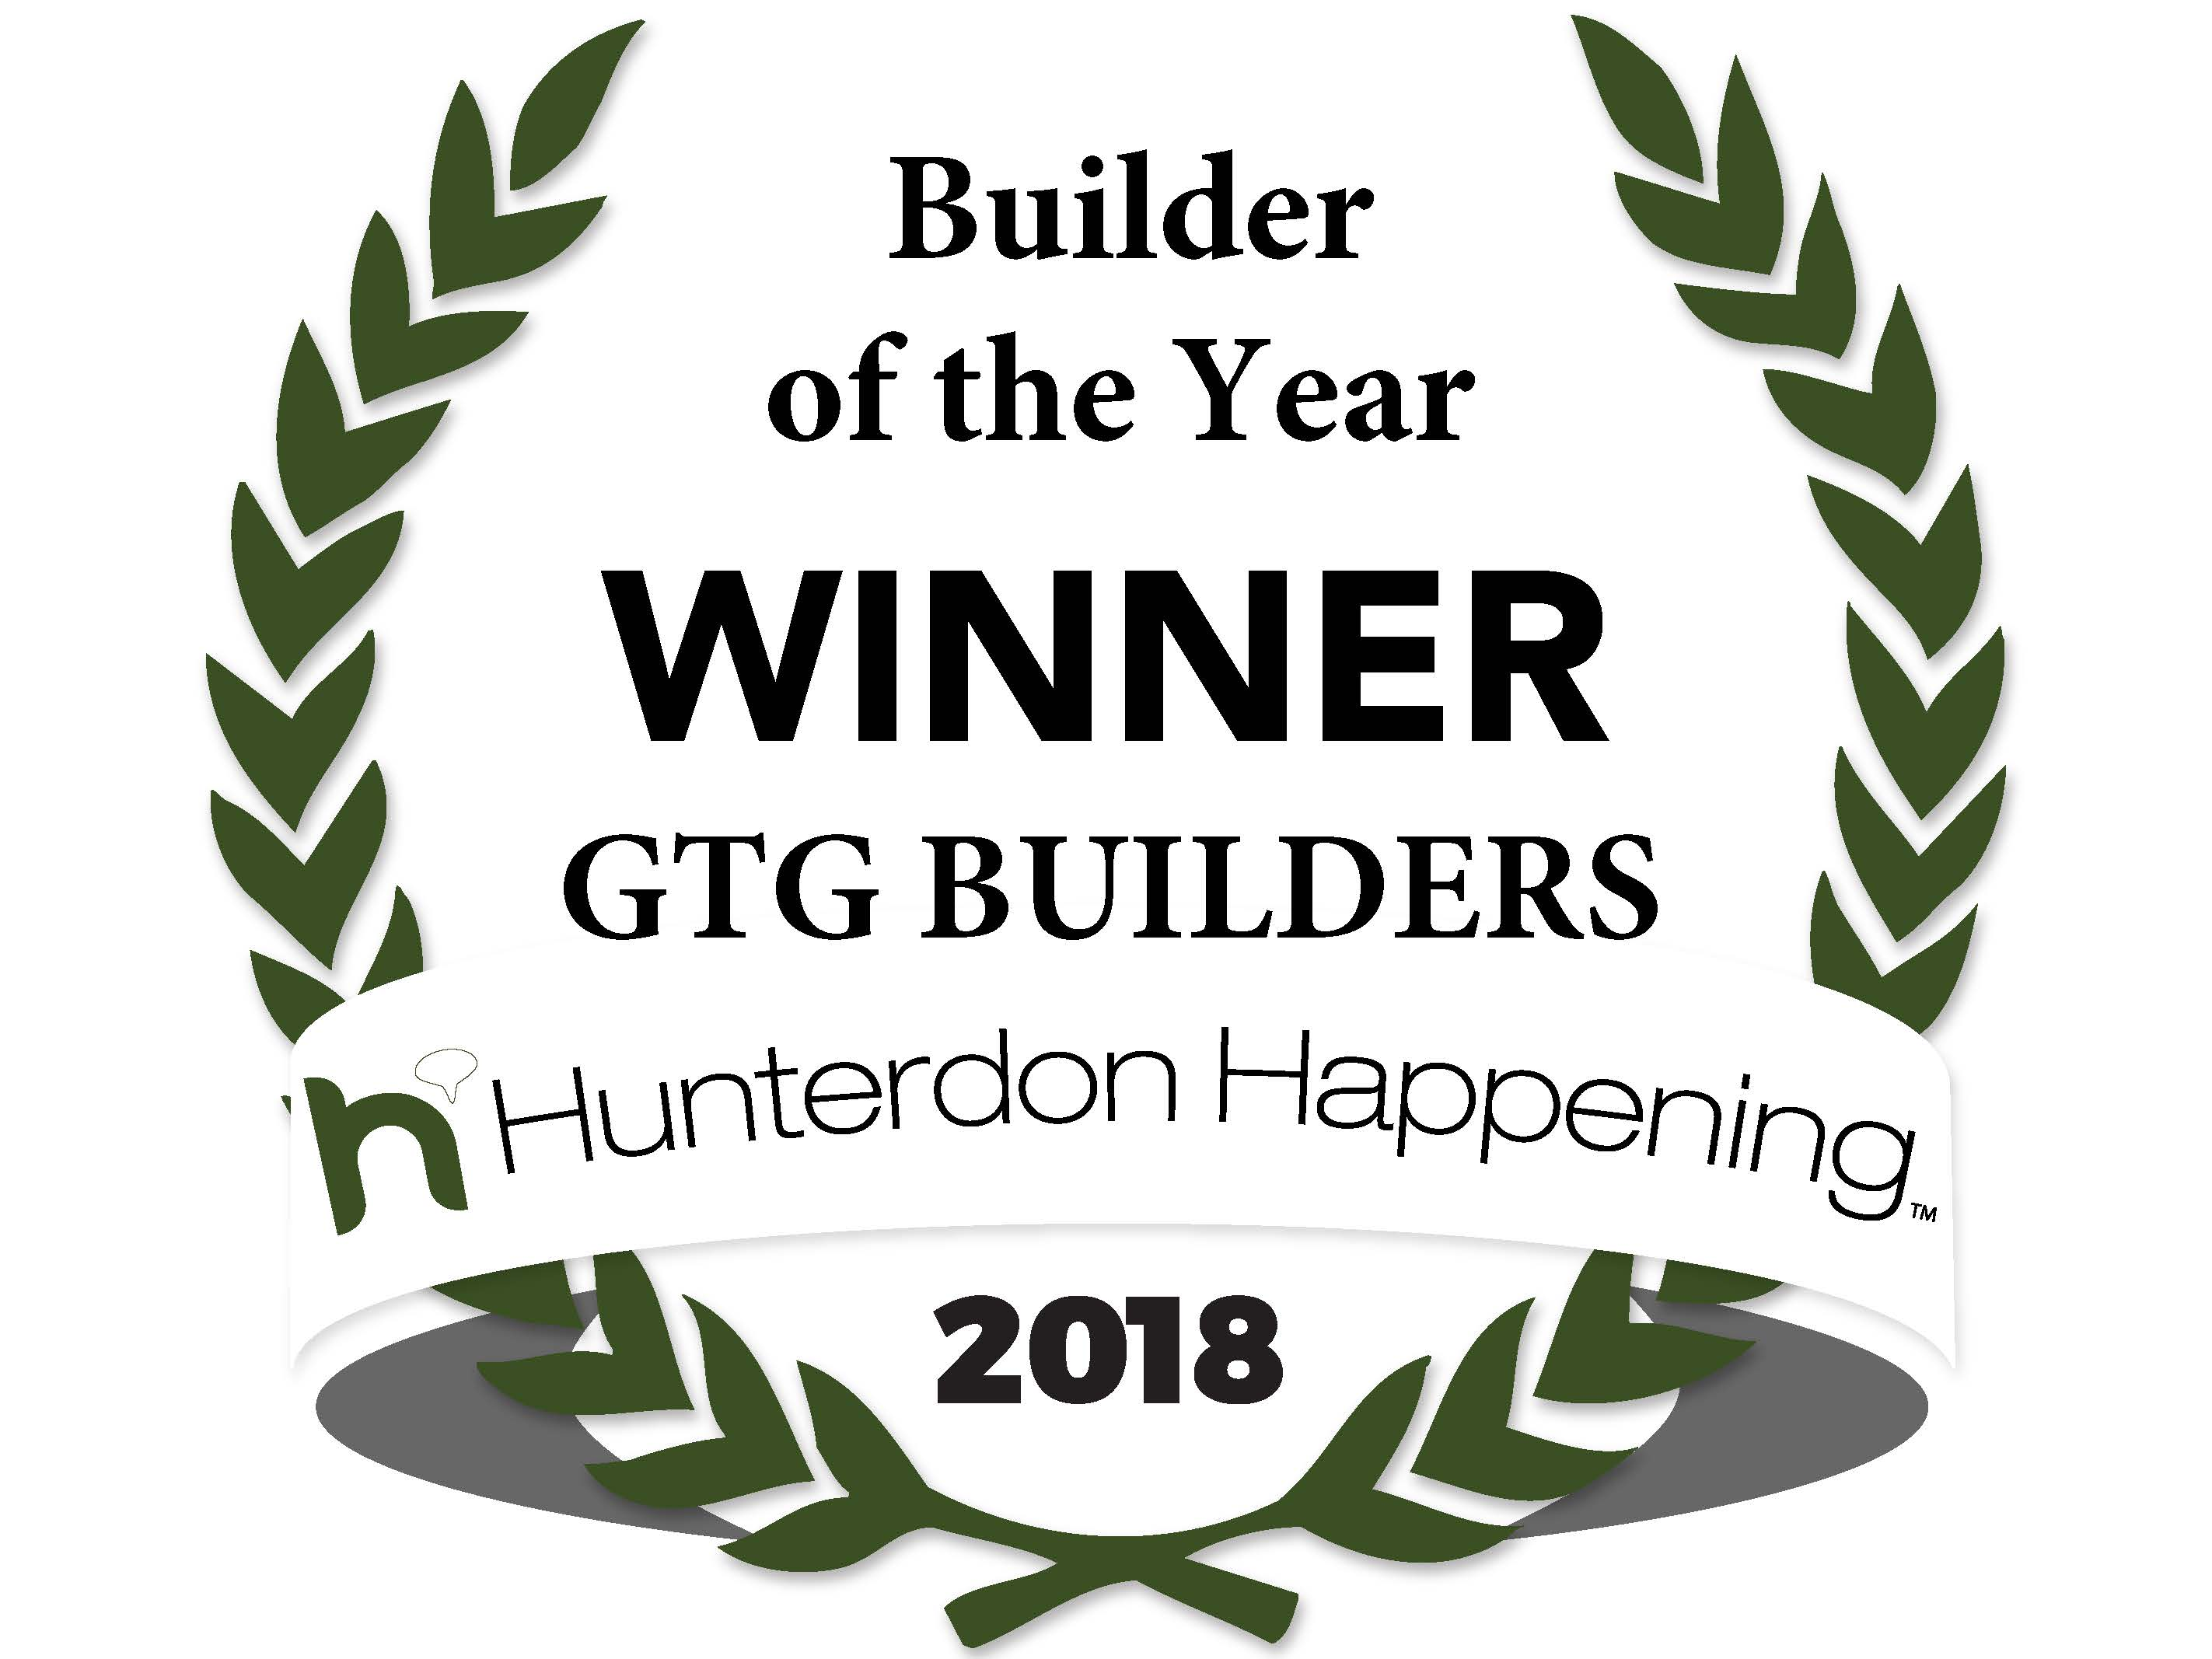 Hunterdon-Builder-of-the-Year-2018-GTG-Custom-Home-Builders